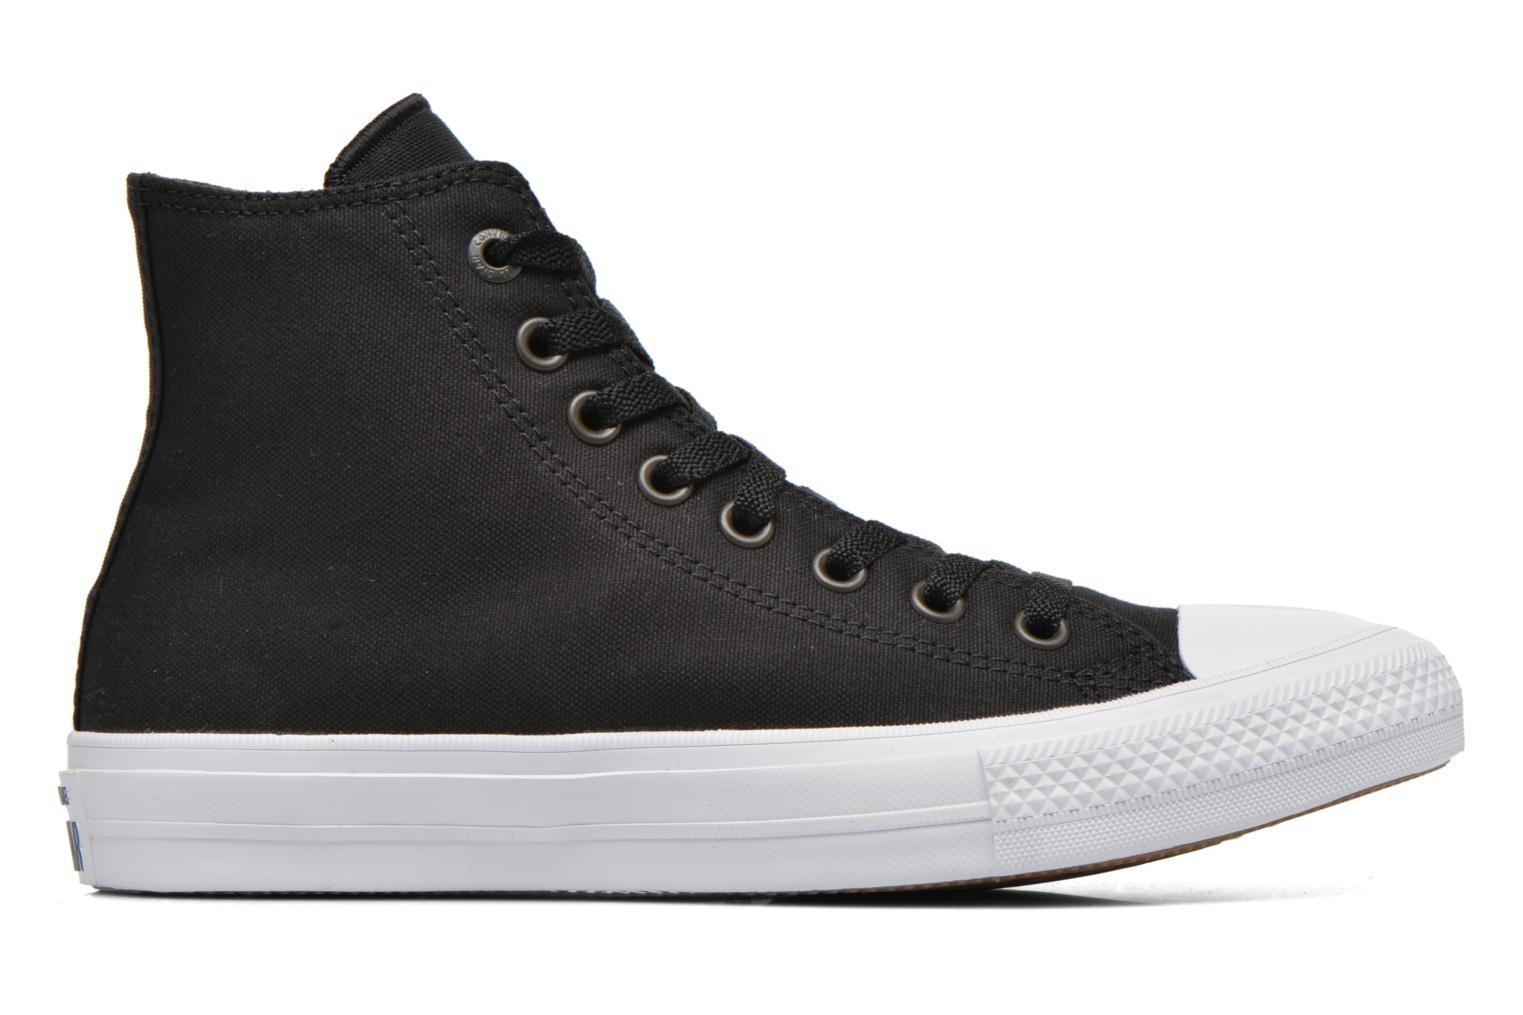 Chuck Taylor All Star II Hi M Black-White-Navy